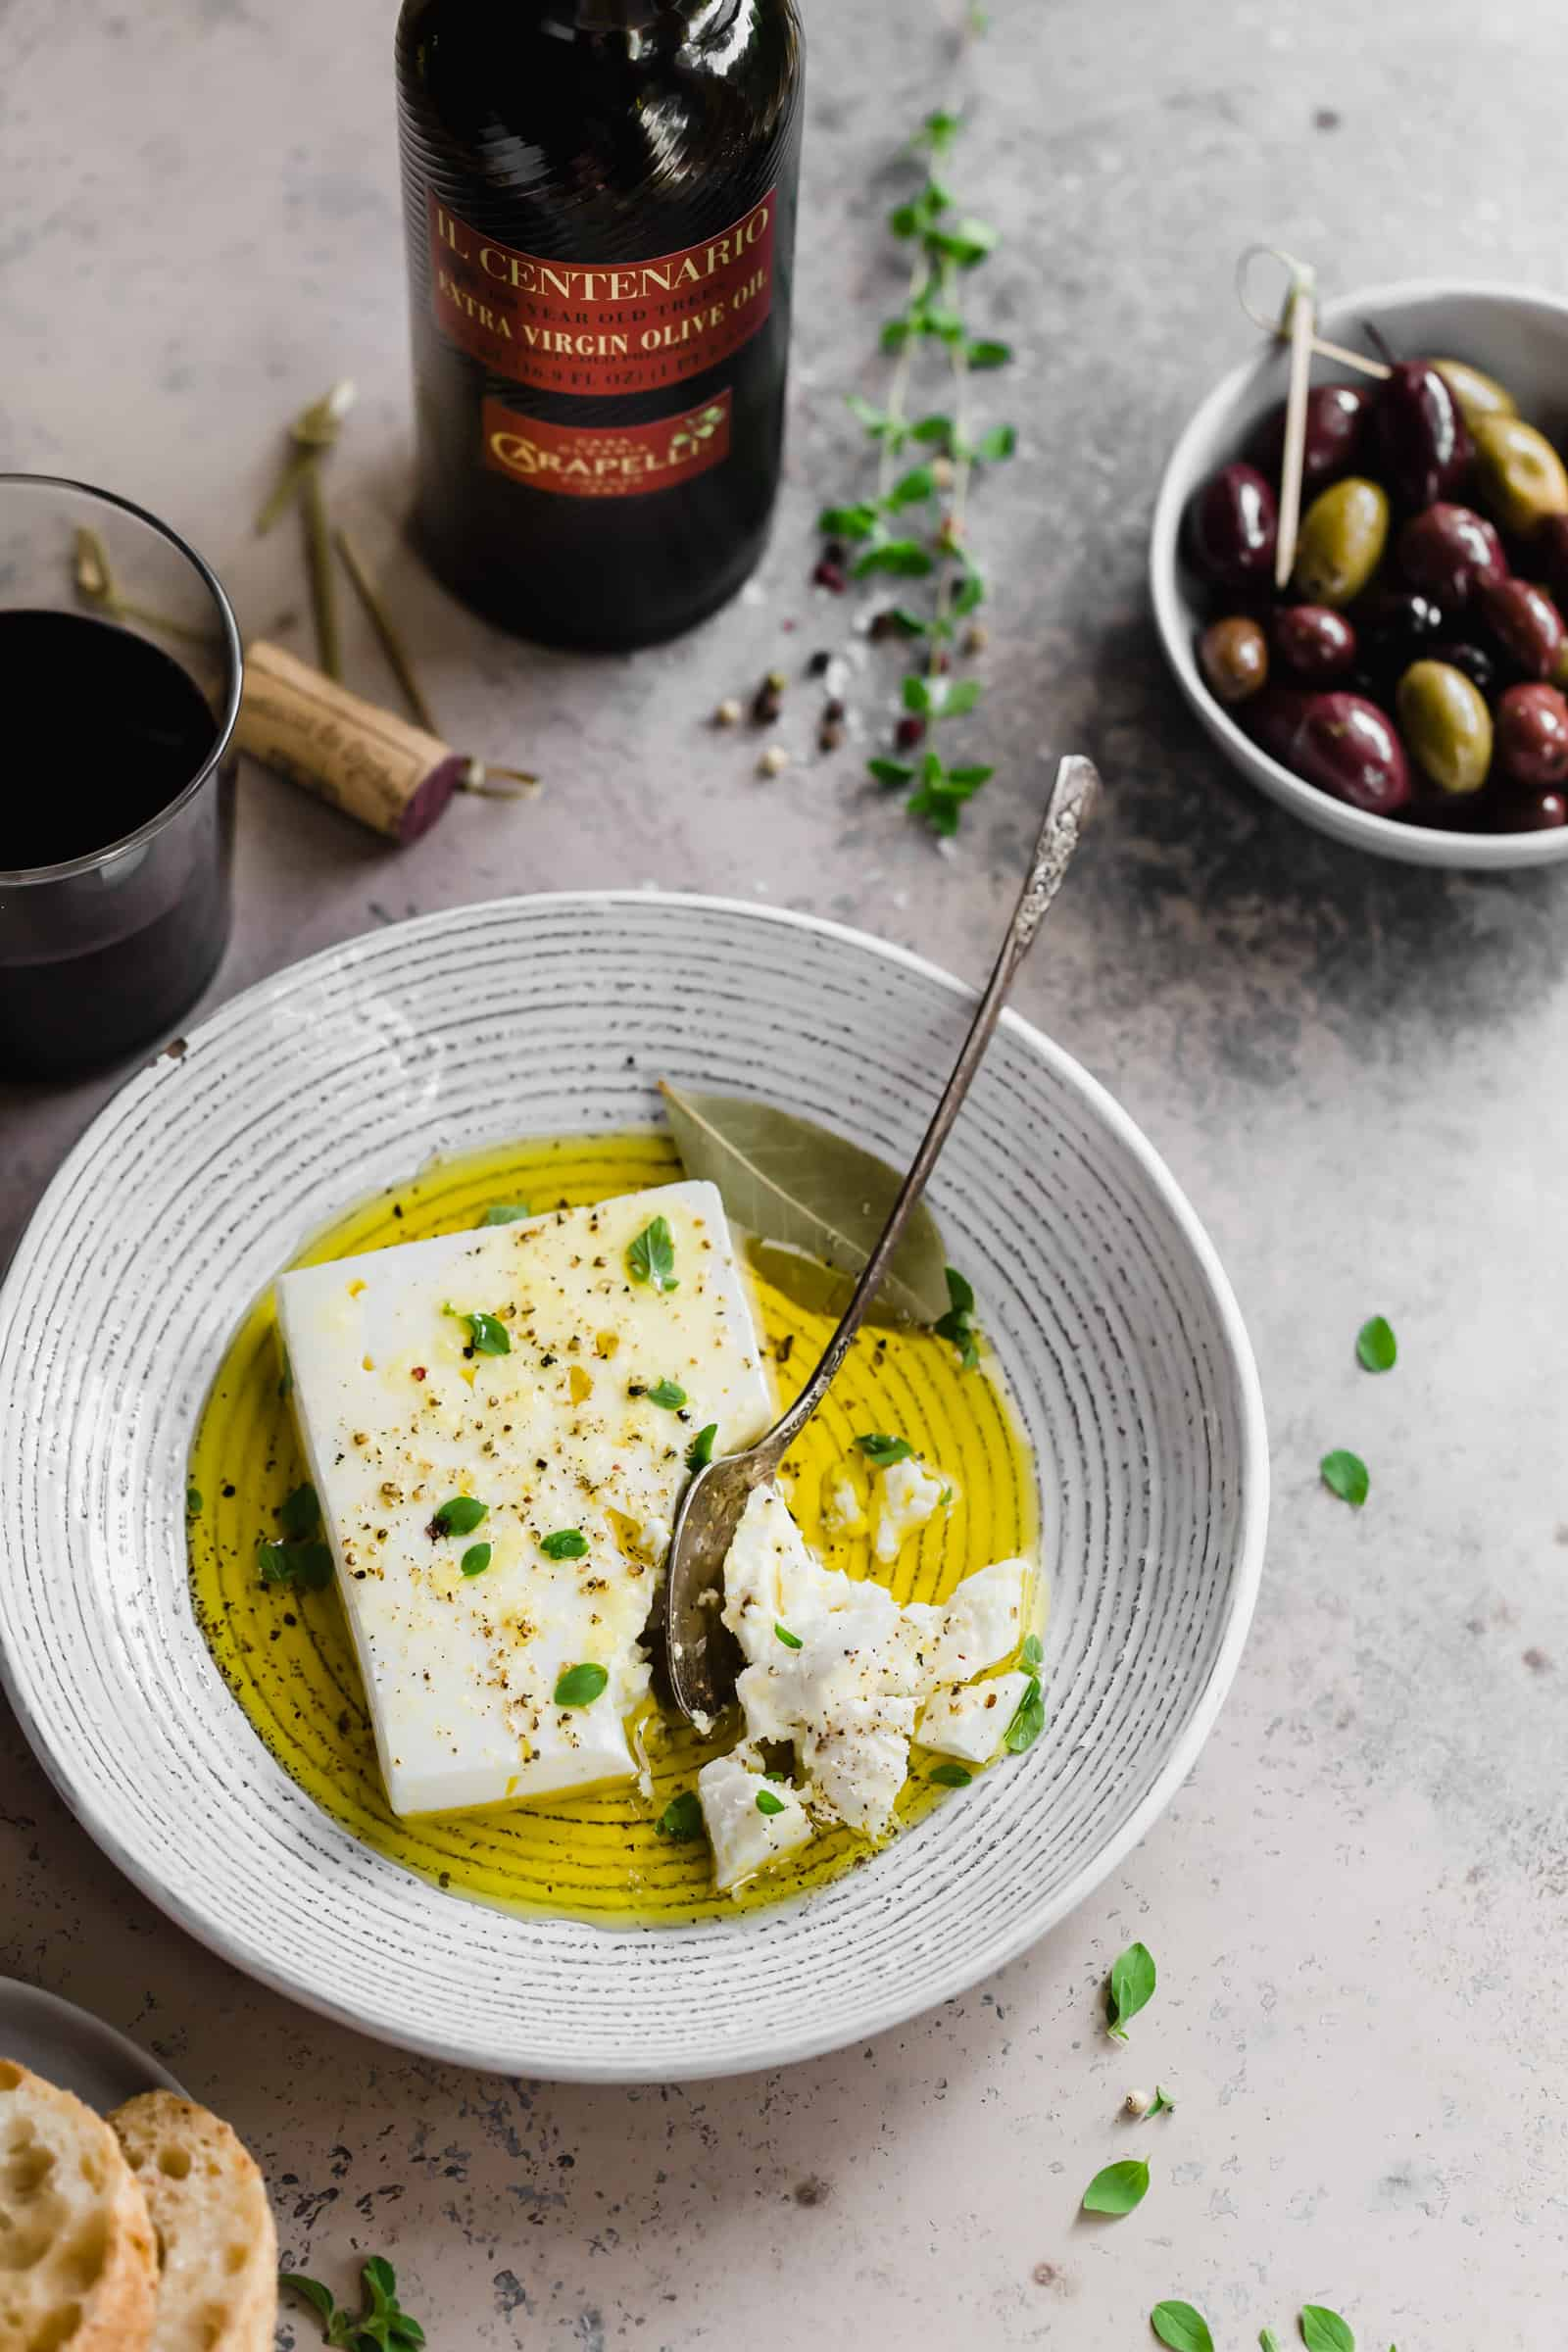 Marinated block of feta in bowl with extra virgin olive oil and fresh herbs